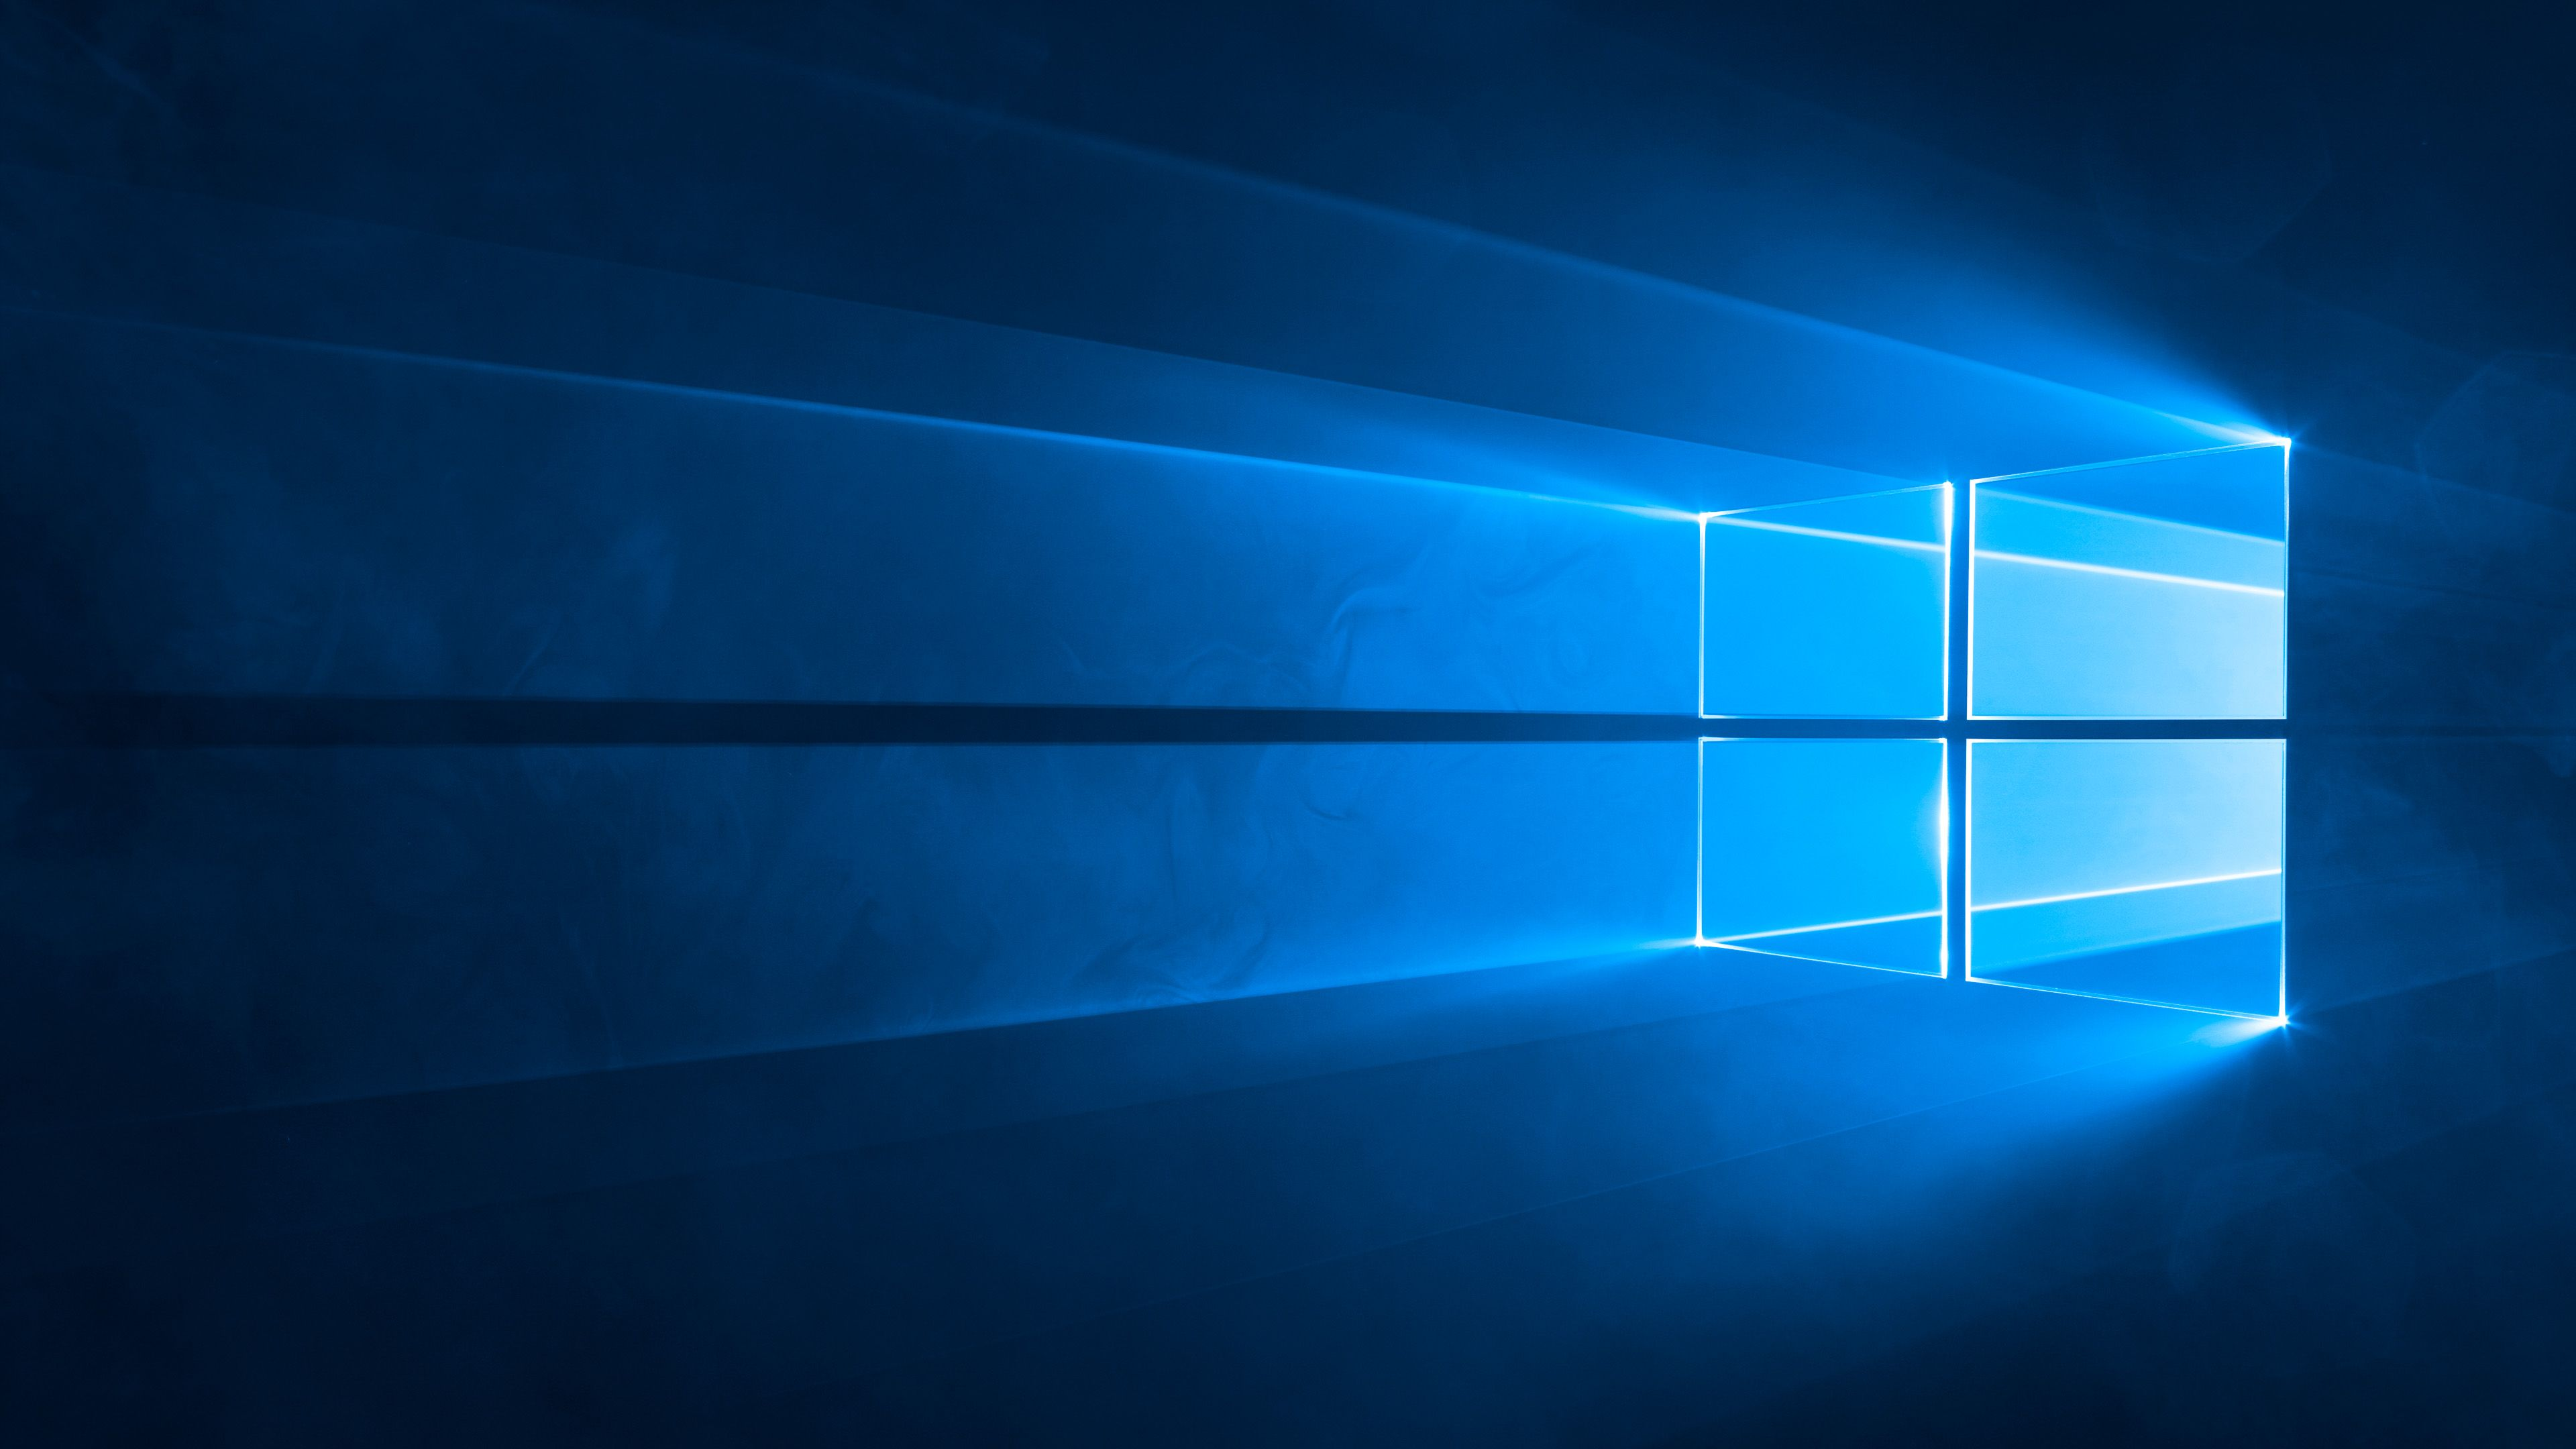 Windows 10 Wallpapers Album On Imgur Wallpaper Windows 10 Windows Wallpaper Windows 10 Logo